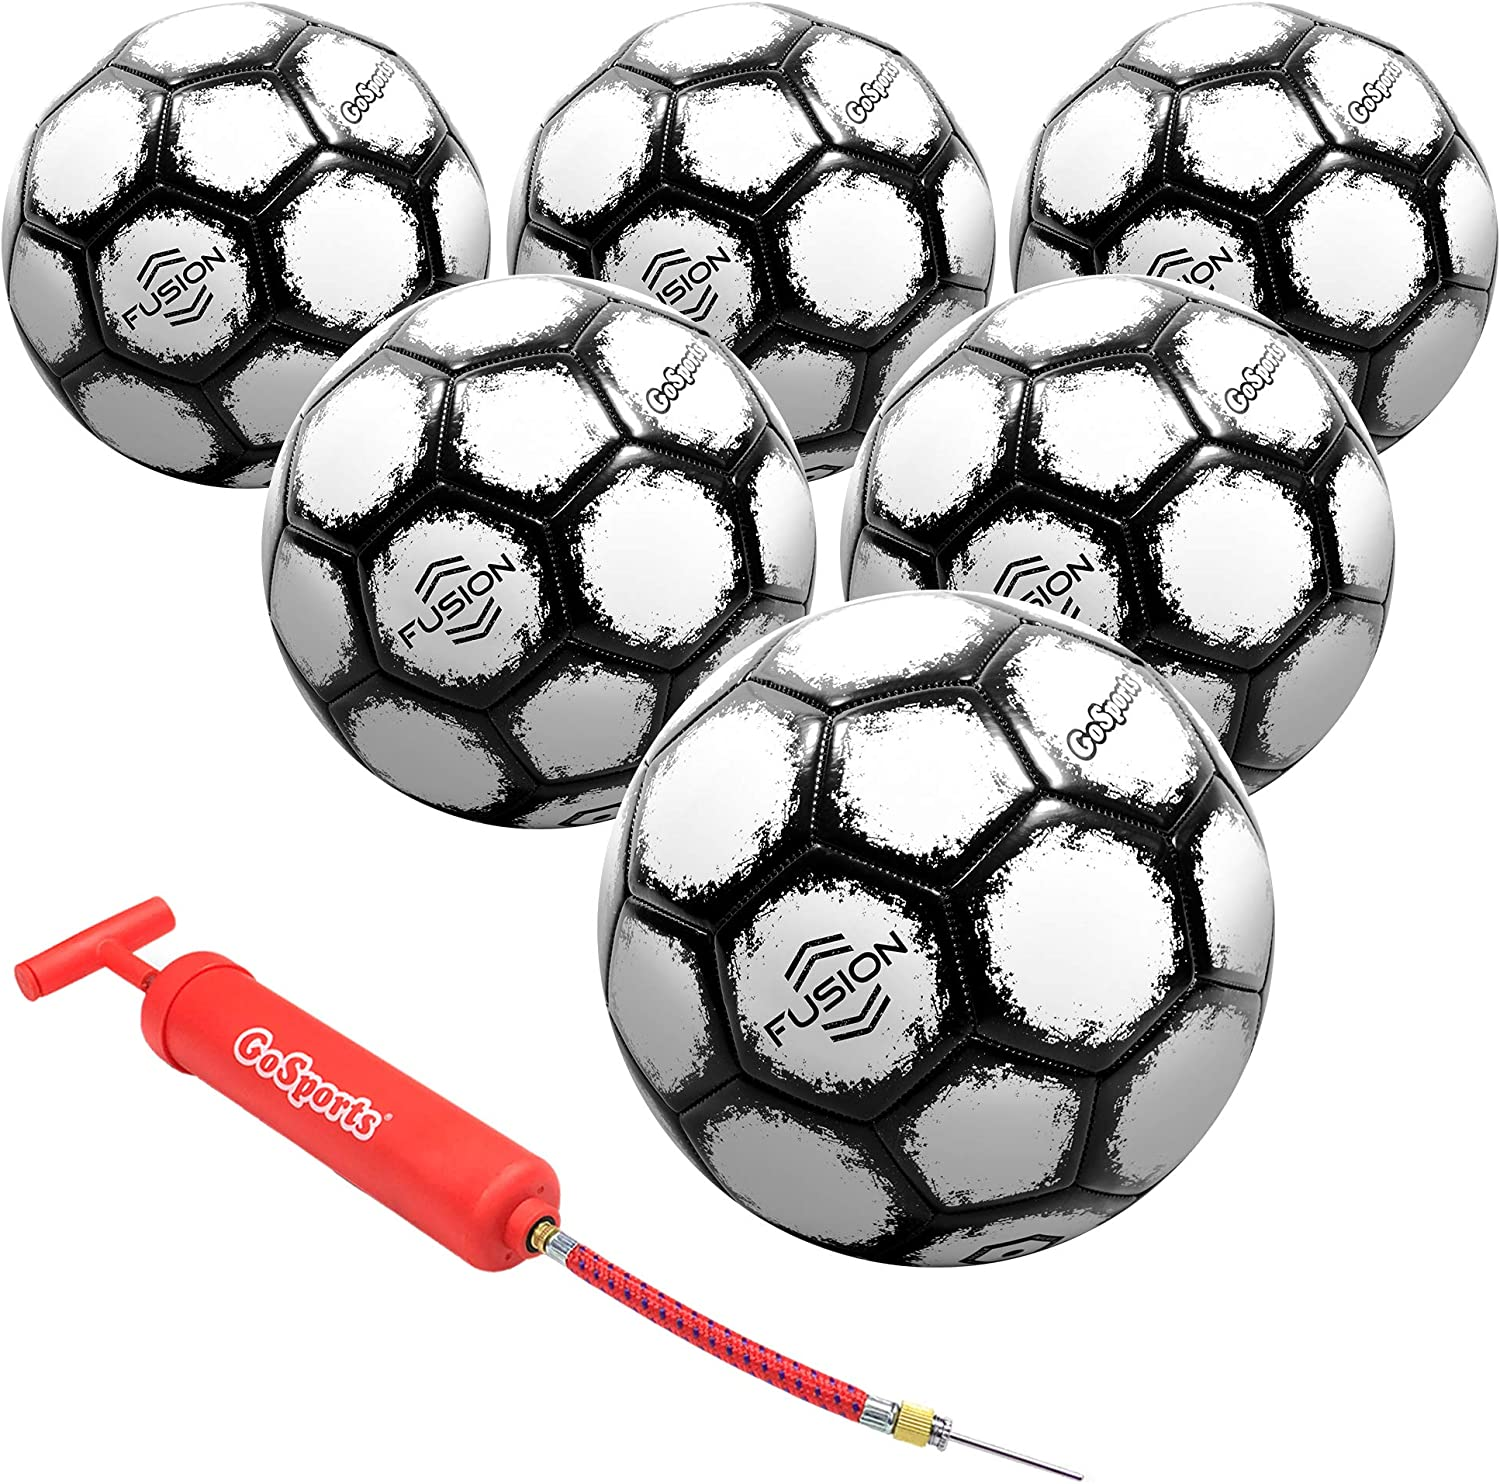 GoSports FUSION Soccer Balls - Top Level Performance - Available as Single Balls or 6 Packs - Includes Pump and Carrying Bag: Sports & Outdoors